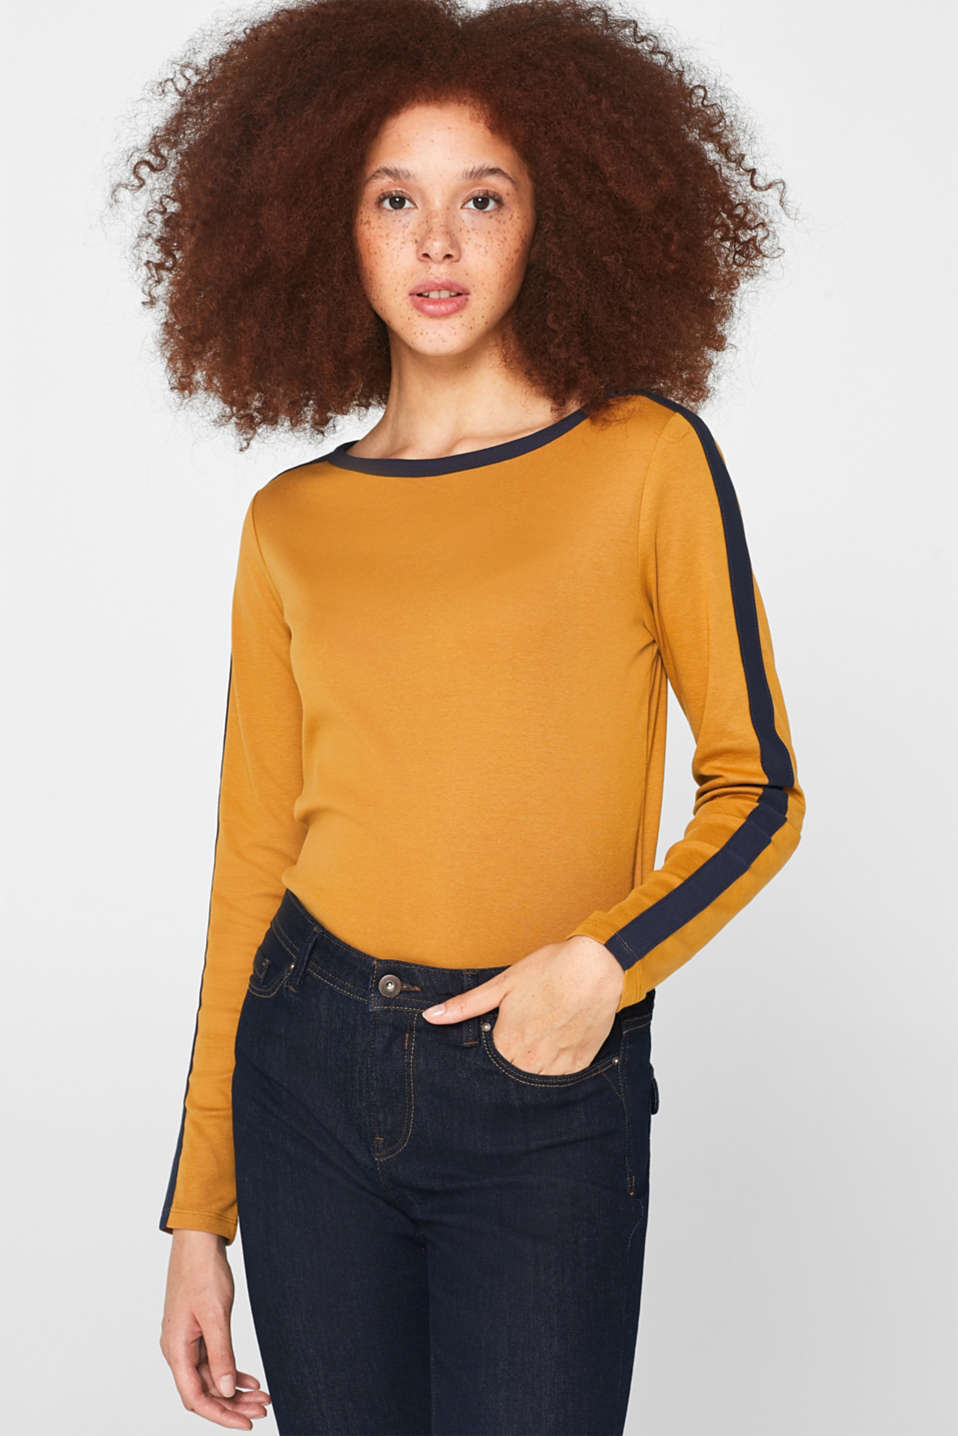 edc - Long sleeve top with contrasting details, cotton